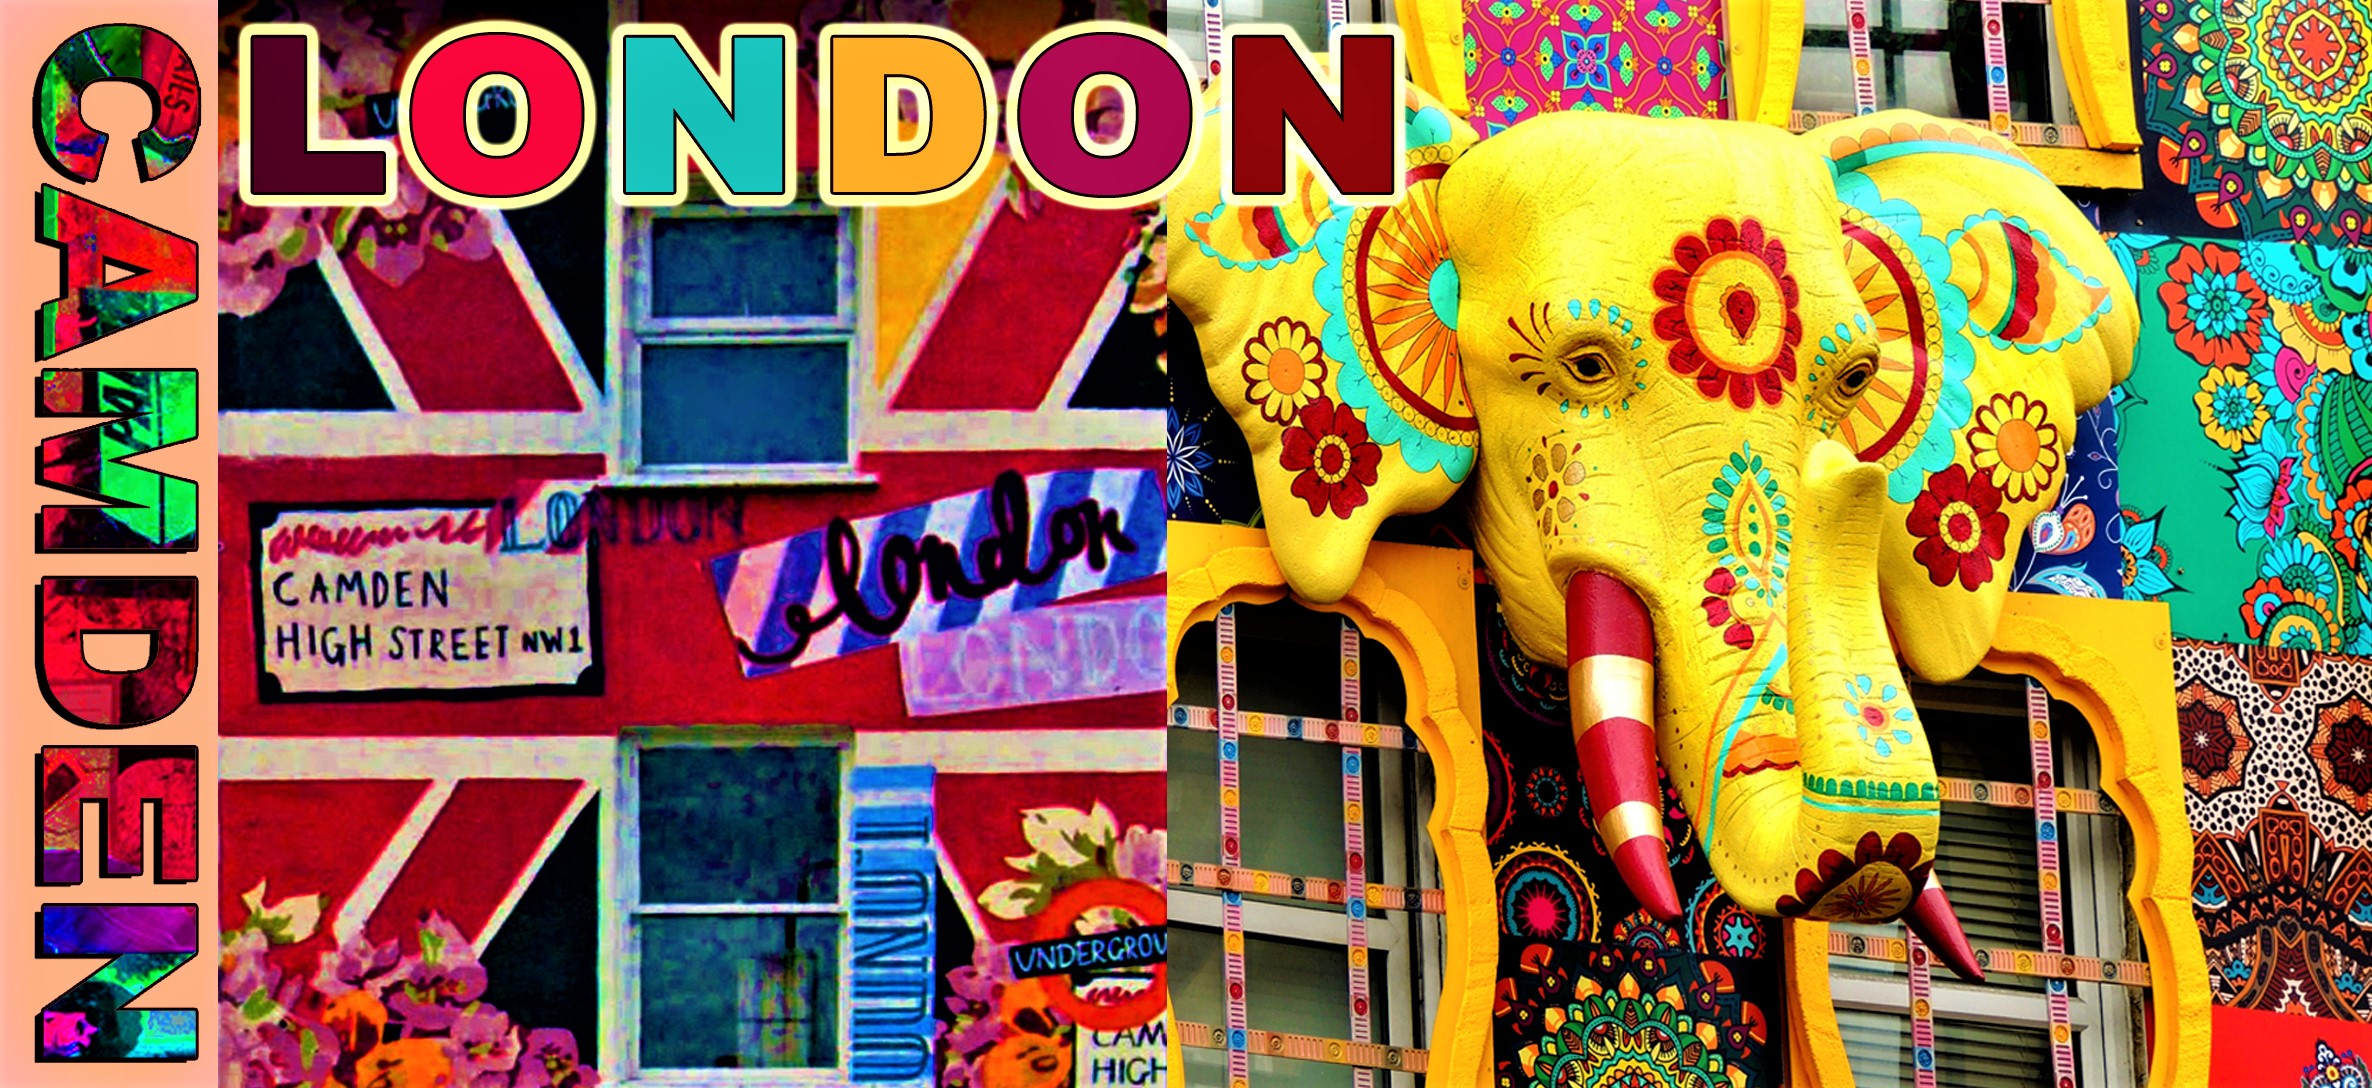 Postcard - the eccentric and elaborately decorated shops of Camden High Street, Camden London